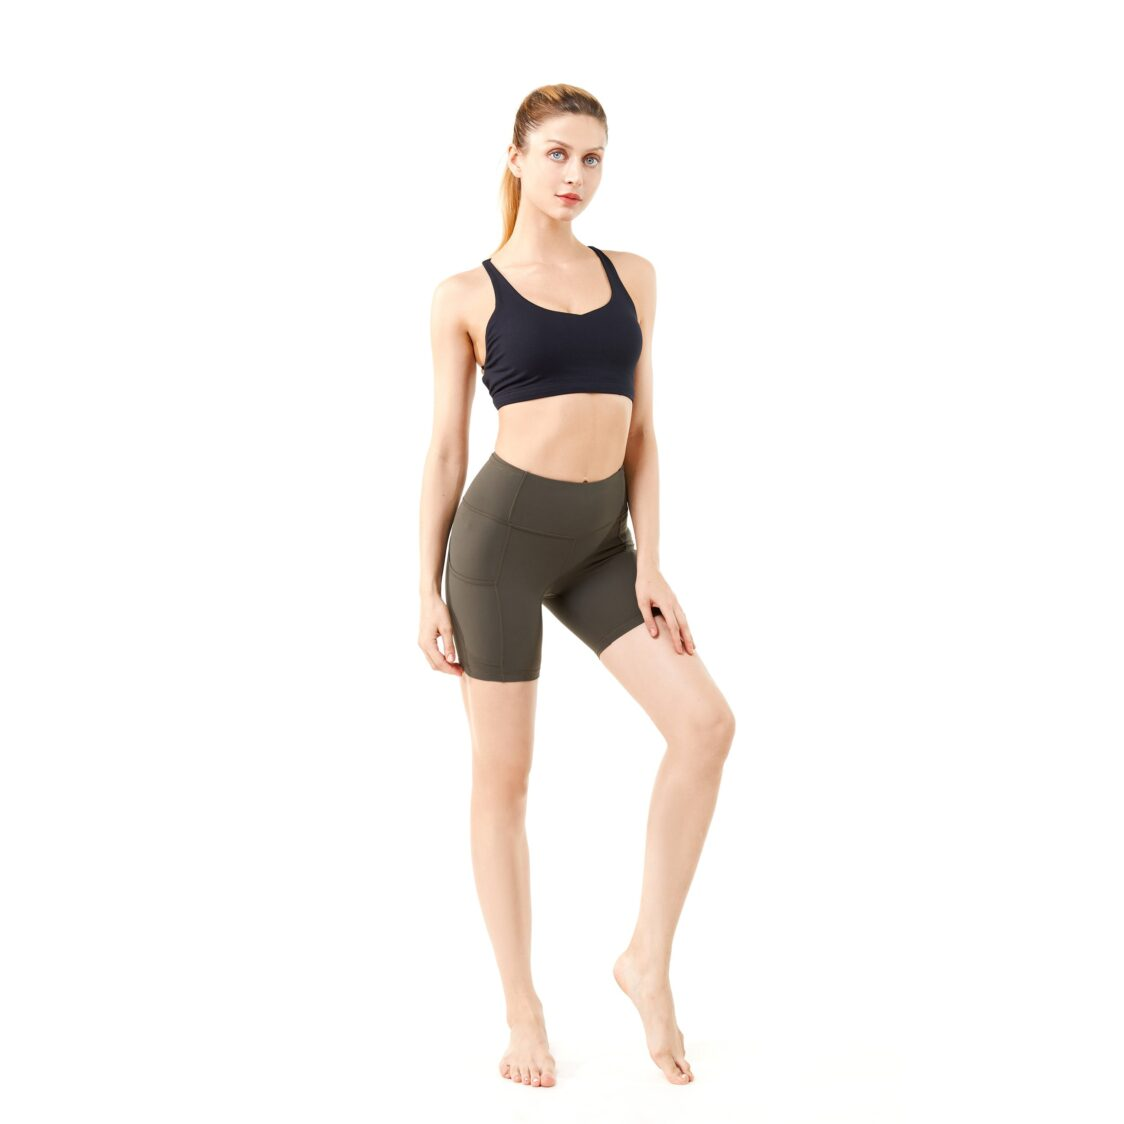 YOF Athletica Runner Shorts 6In Army Green